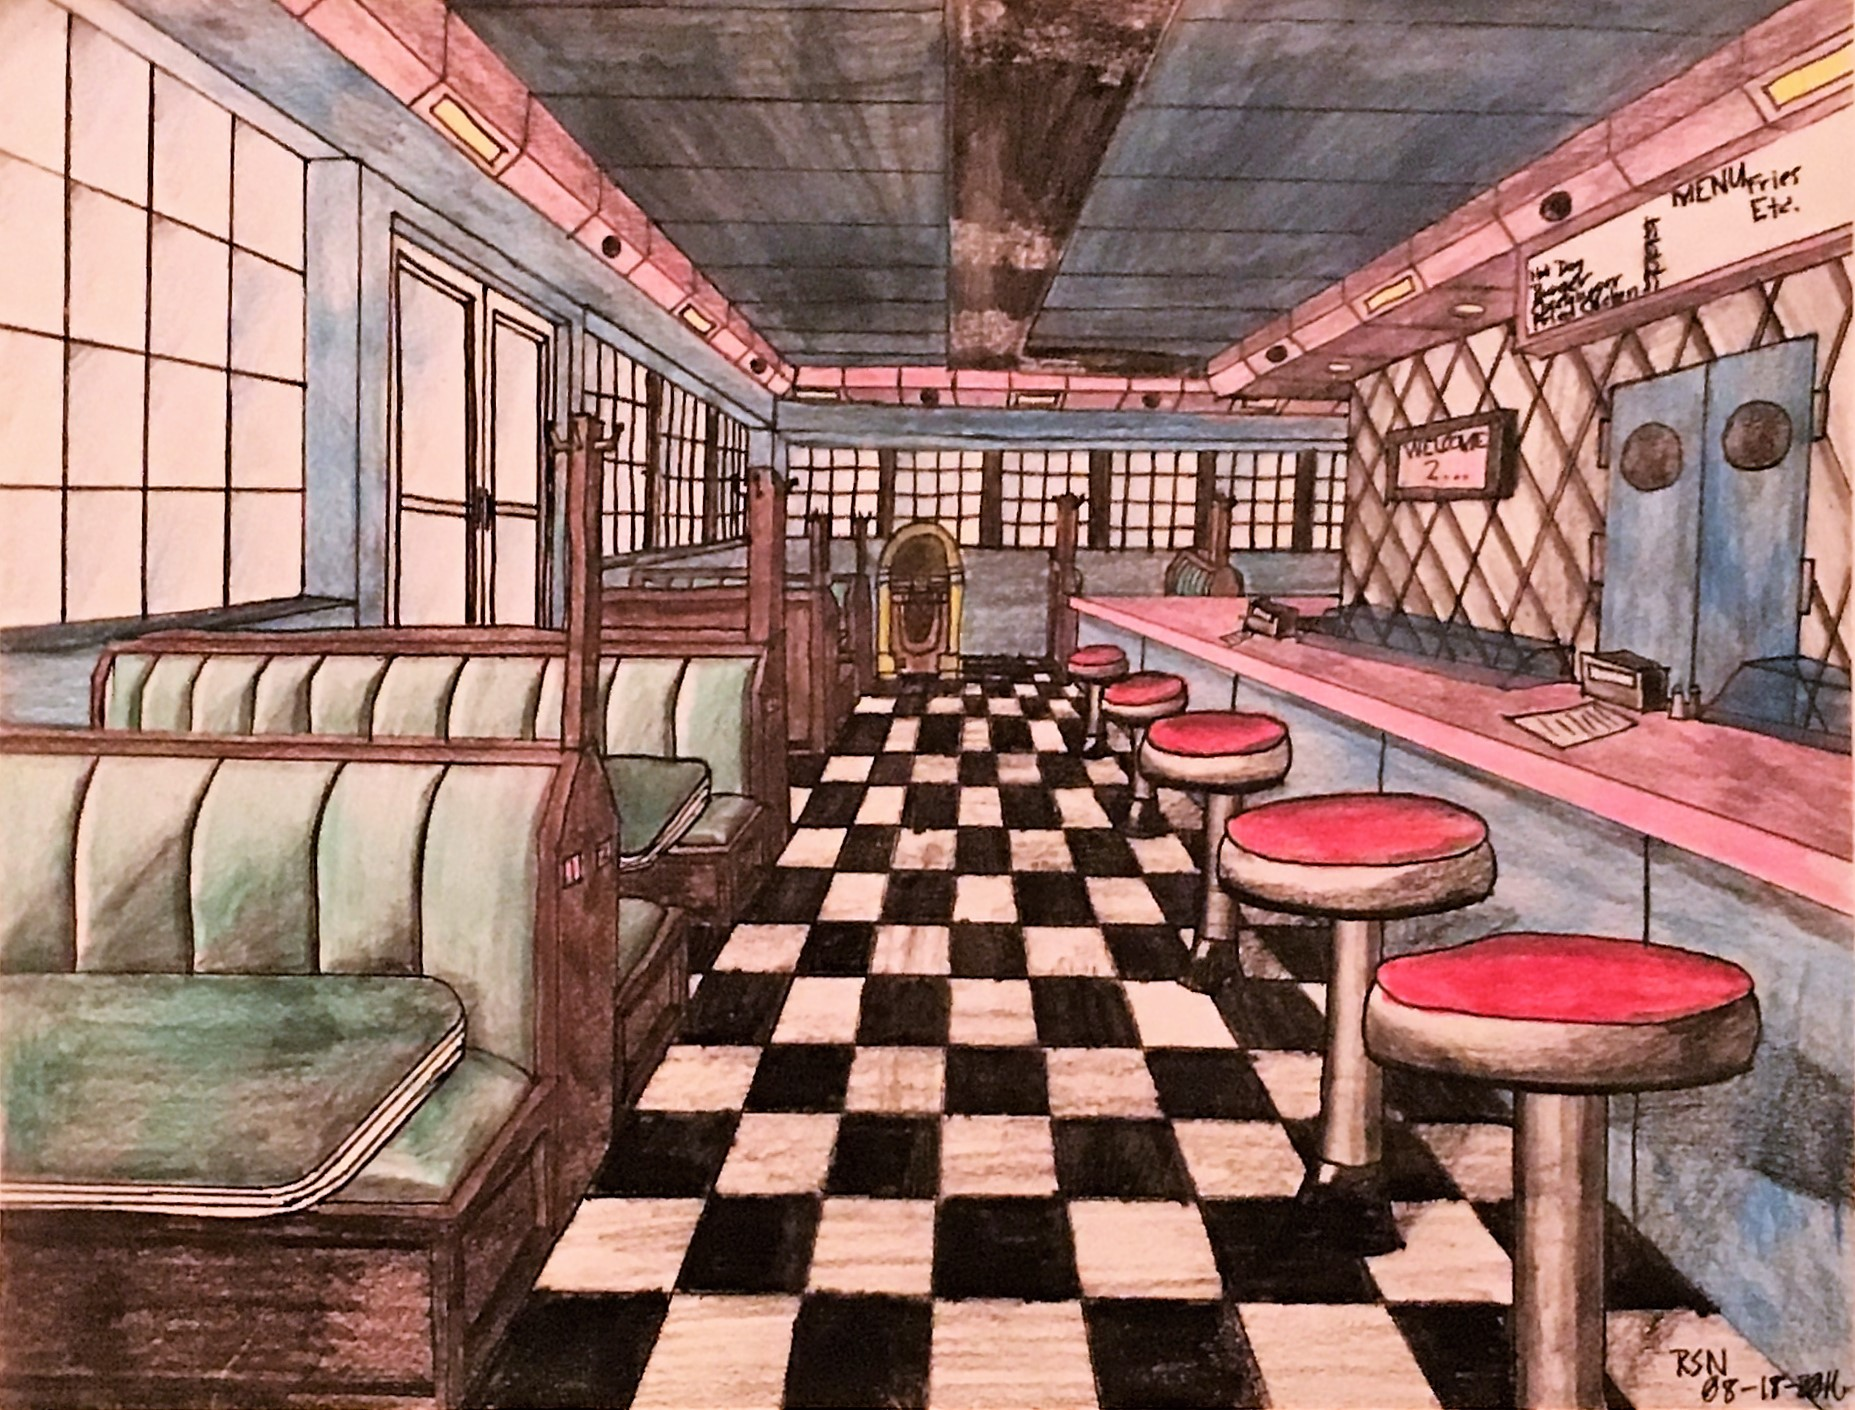 A 50s Diner By Slademation On Newgrounds